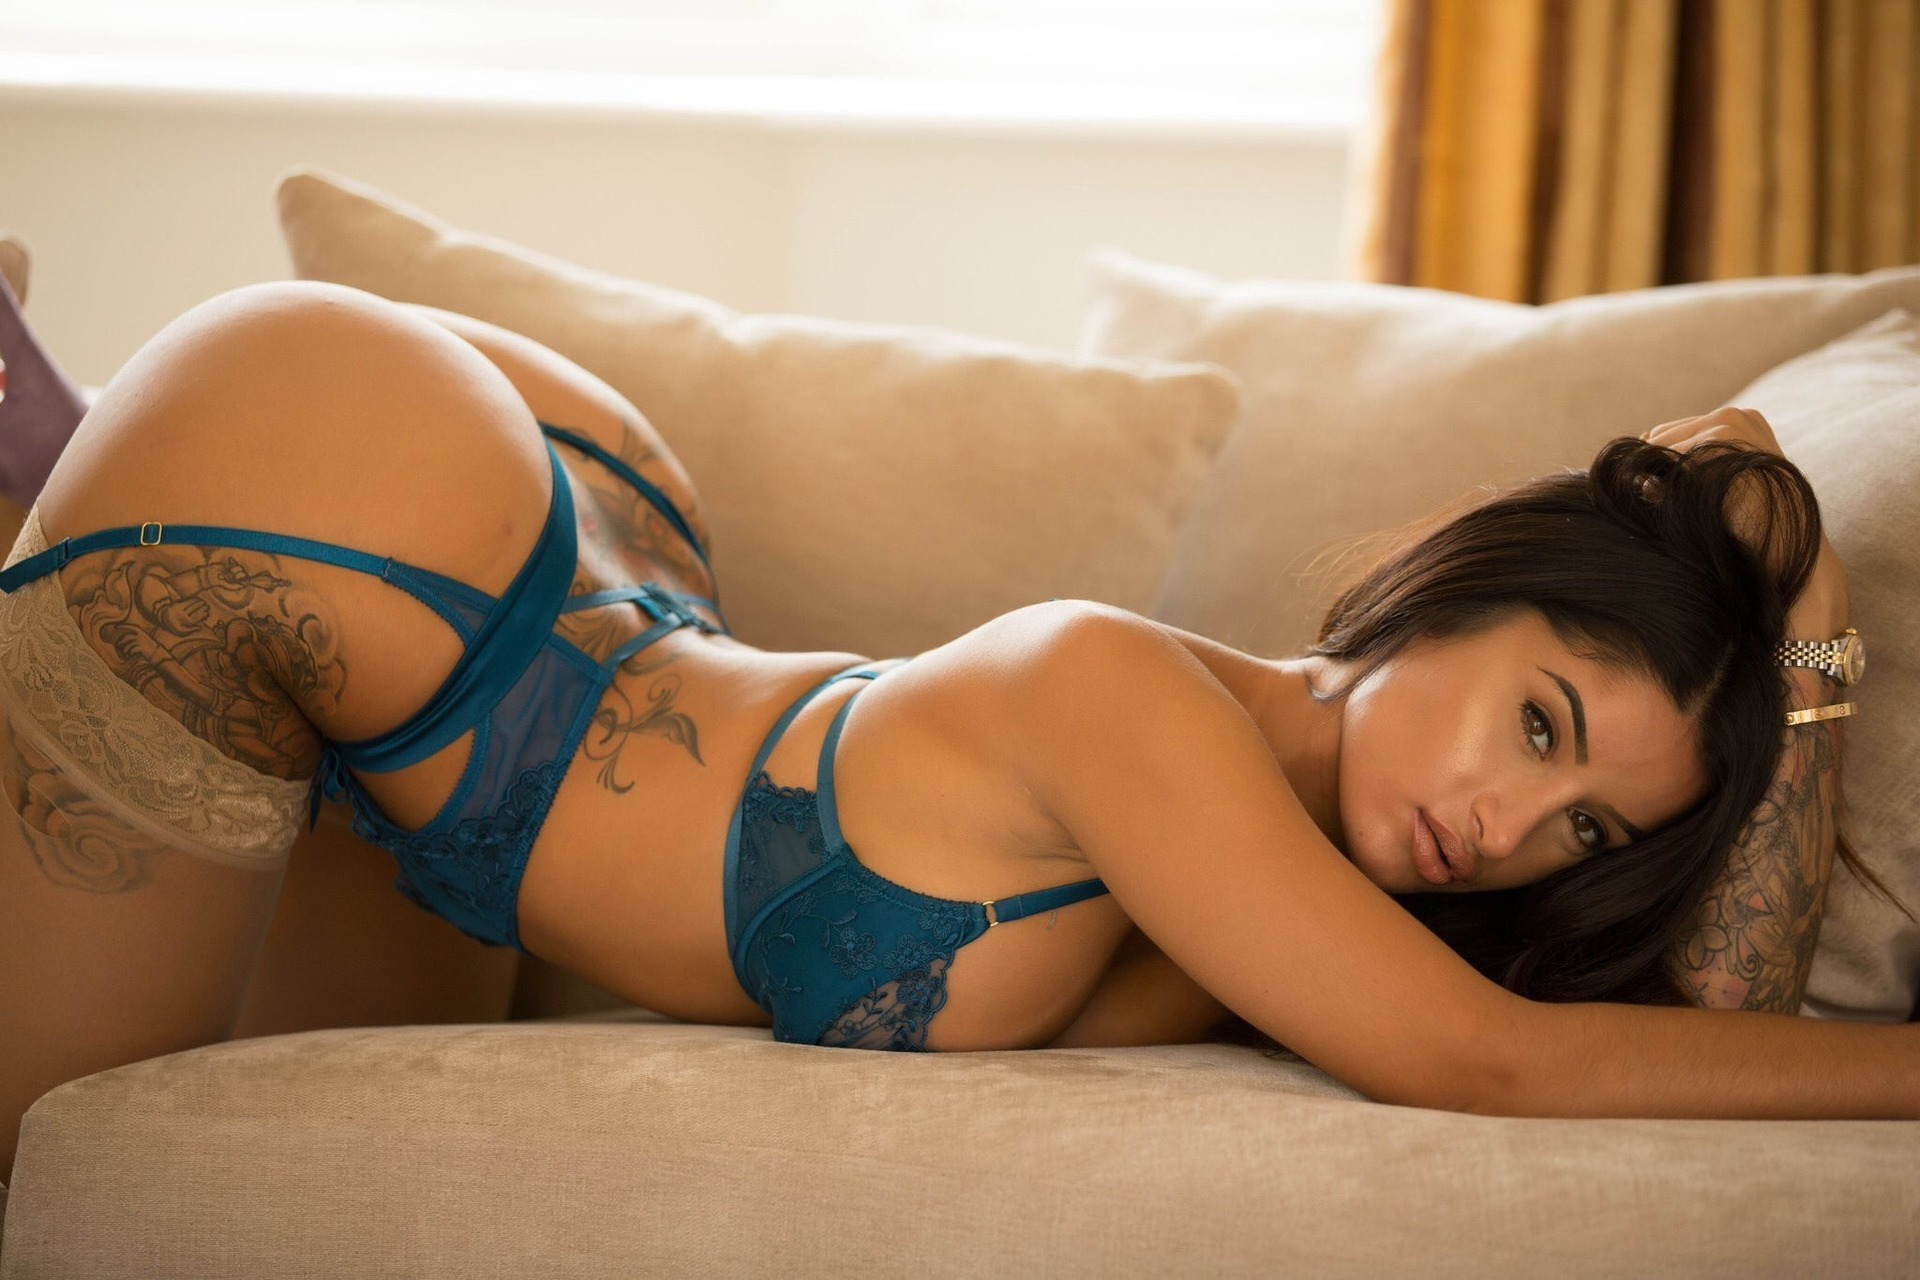 Preeti on all fours on a sofa in green bra and knickers and skin colour stockings bent over arse in the air